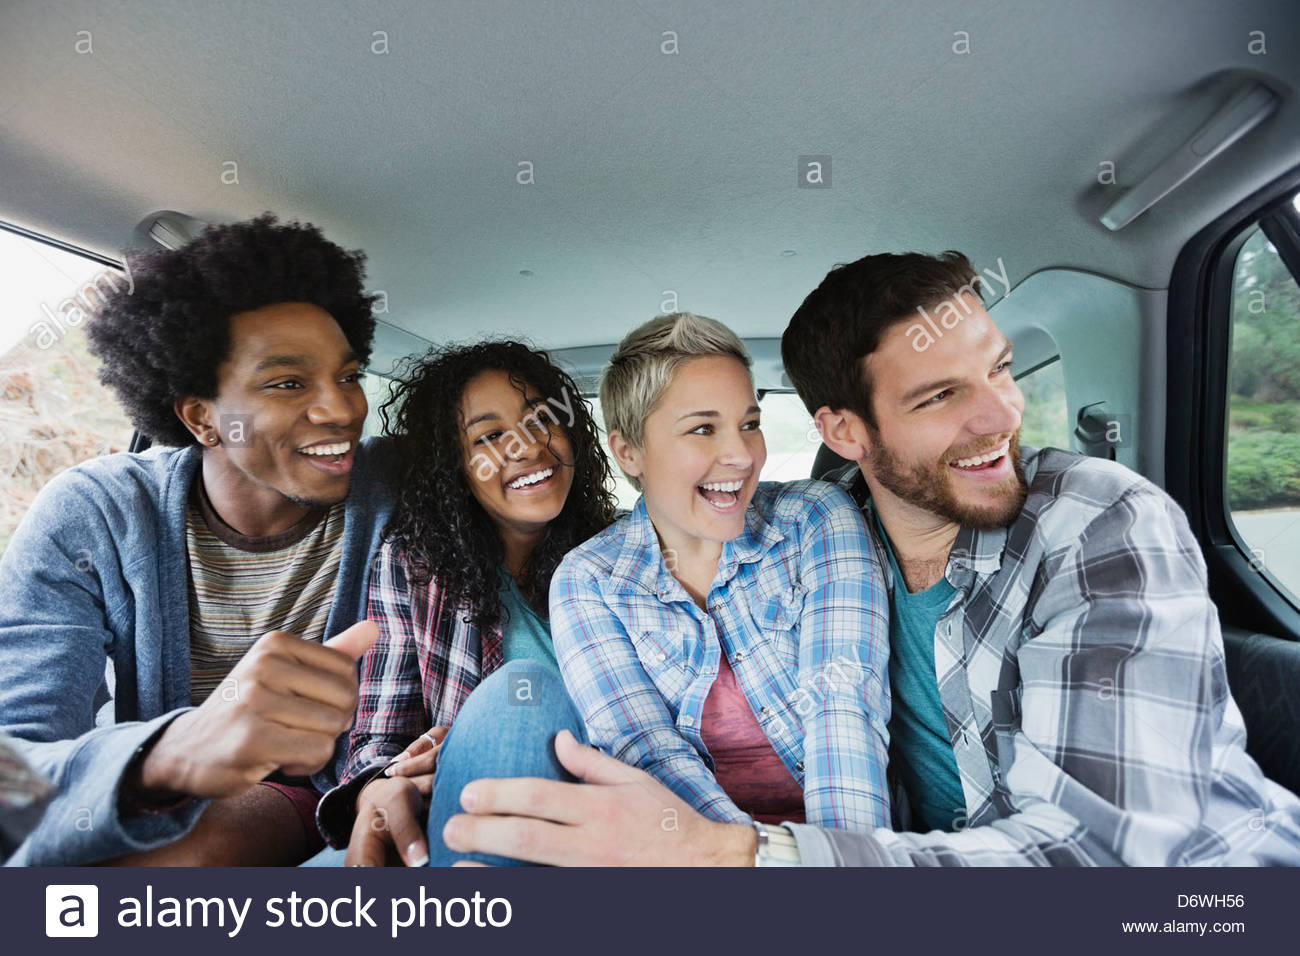 Cheerful friends enjoying road trip - Stock Image